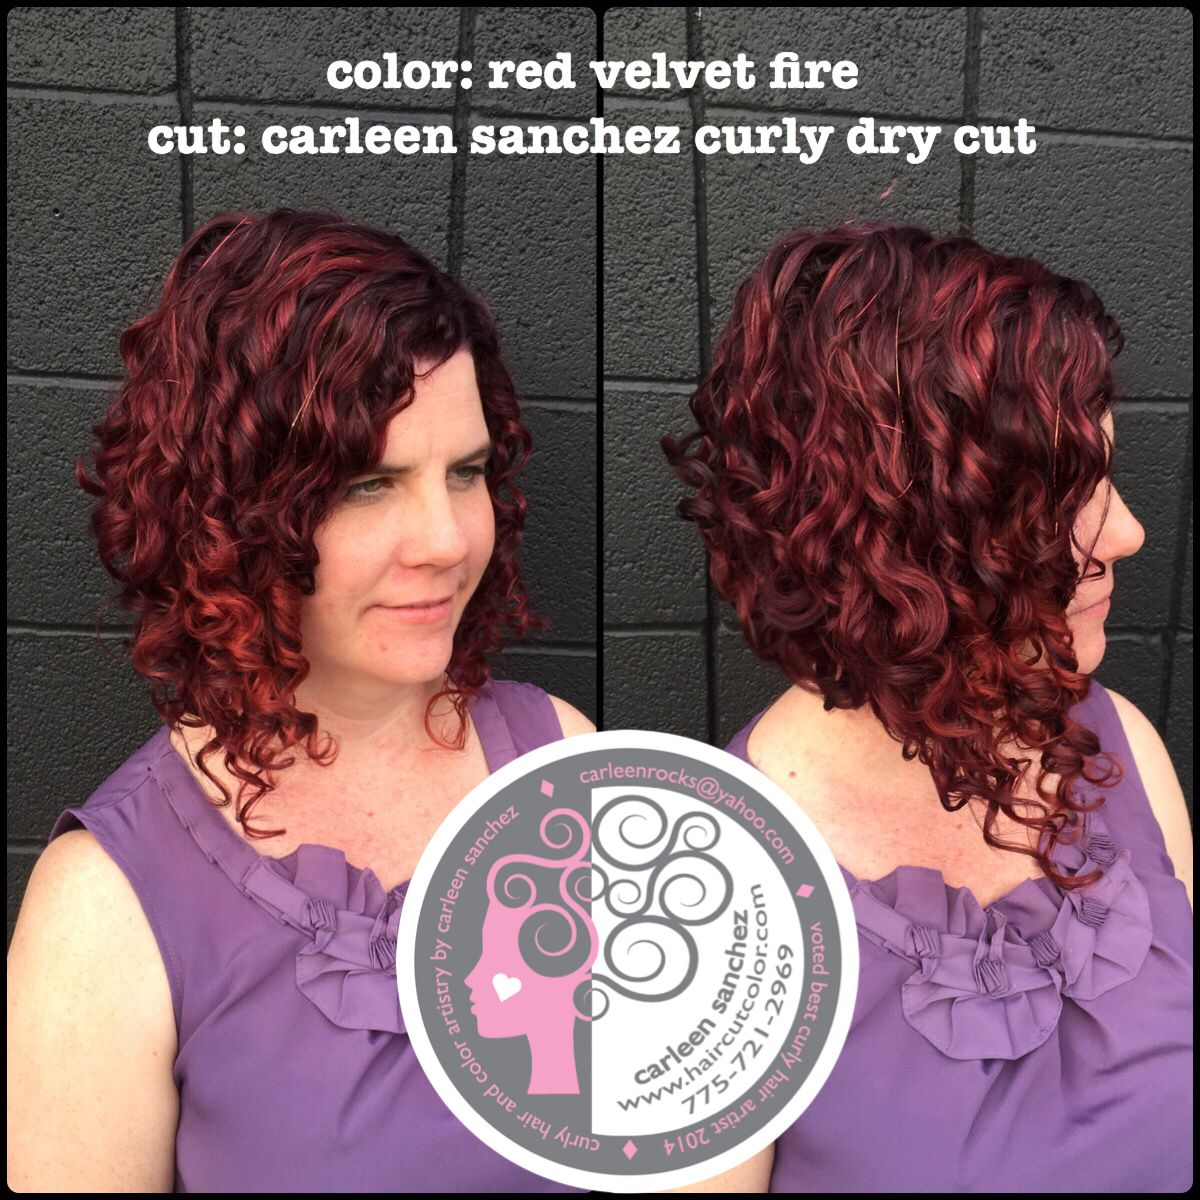 Created By Curly Hair And Color Specialist In Reno Nevada Carleen